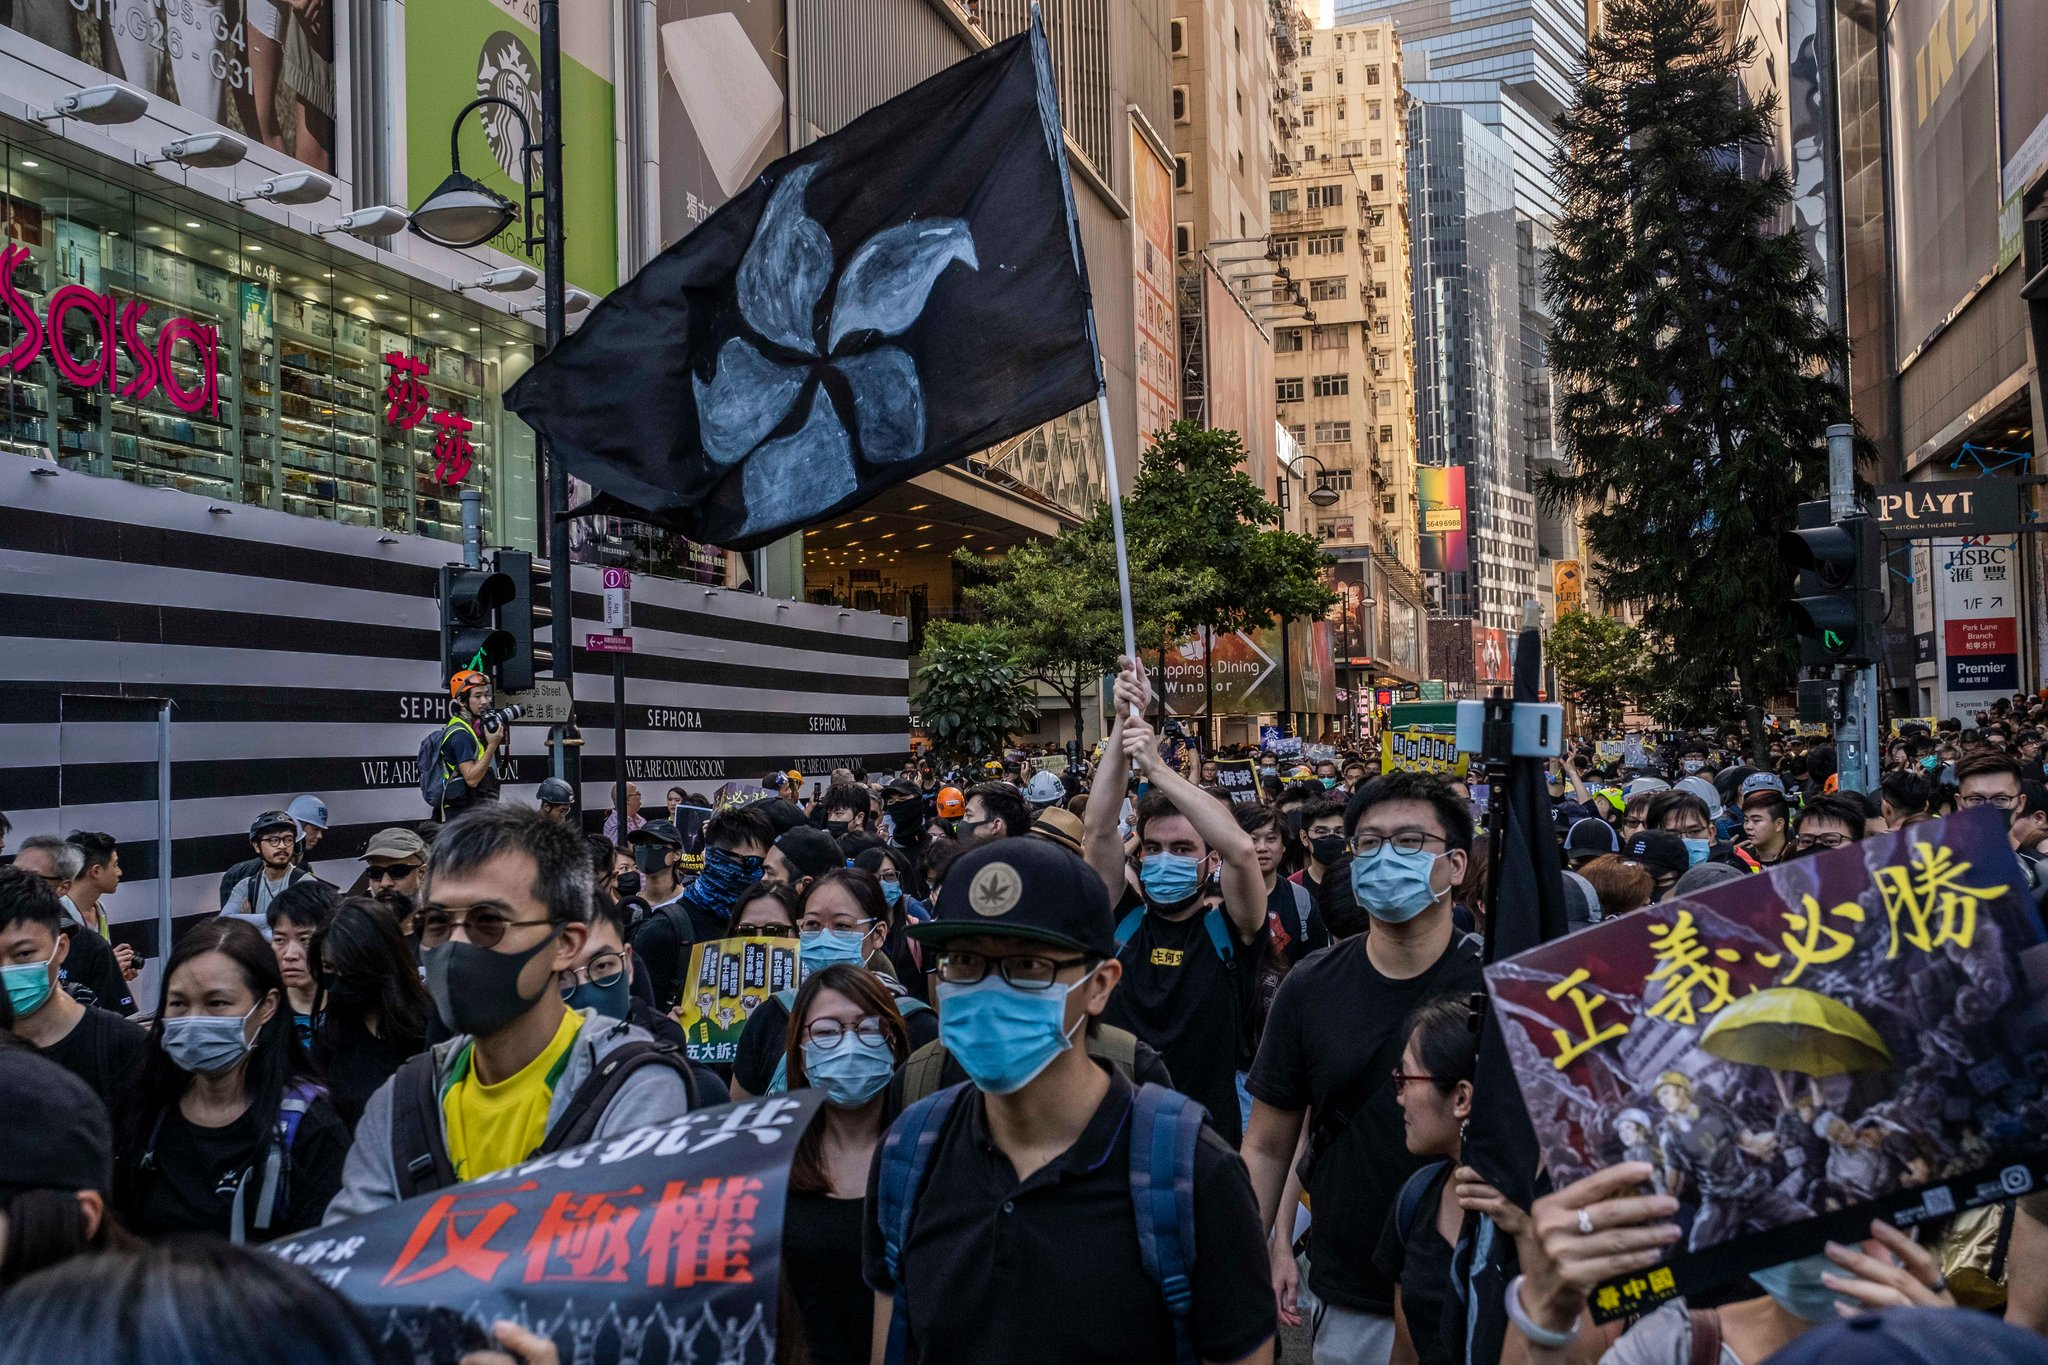 Hong Kong protests were ongoing when the team went there